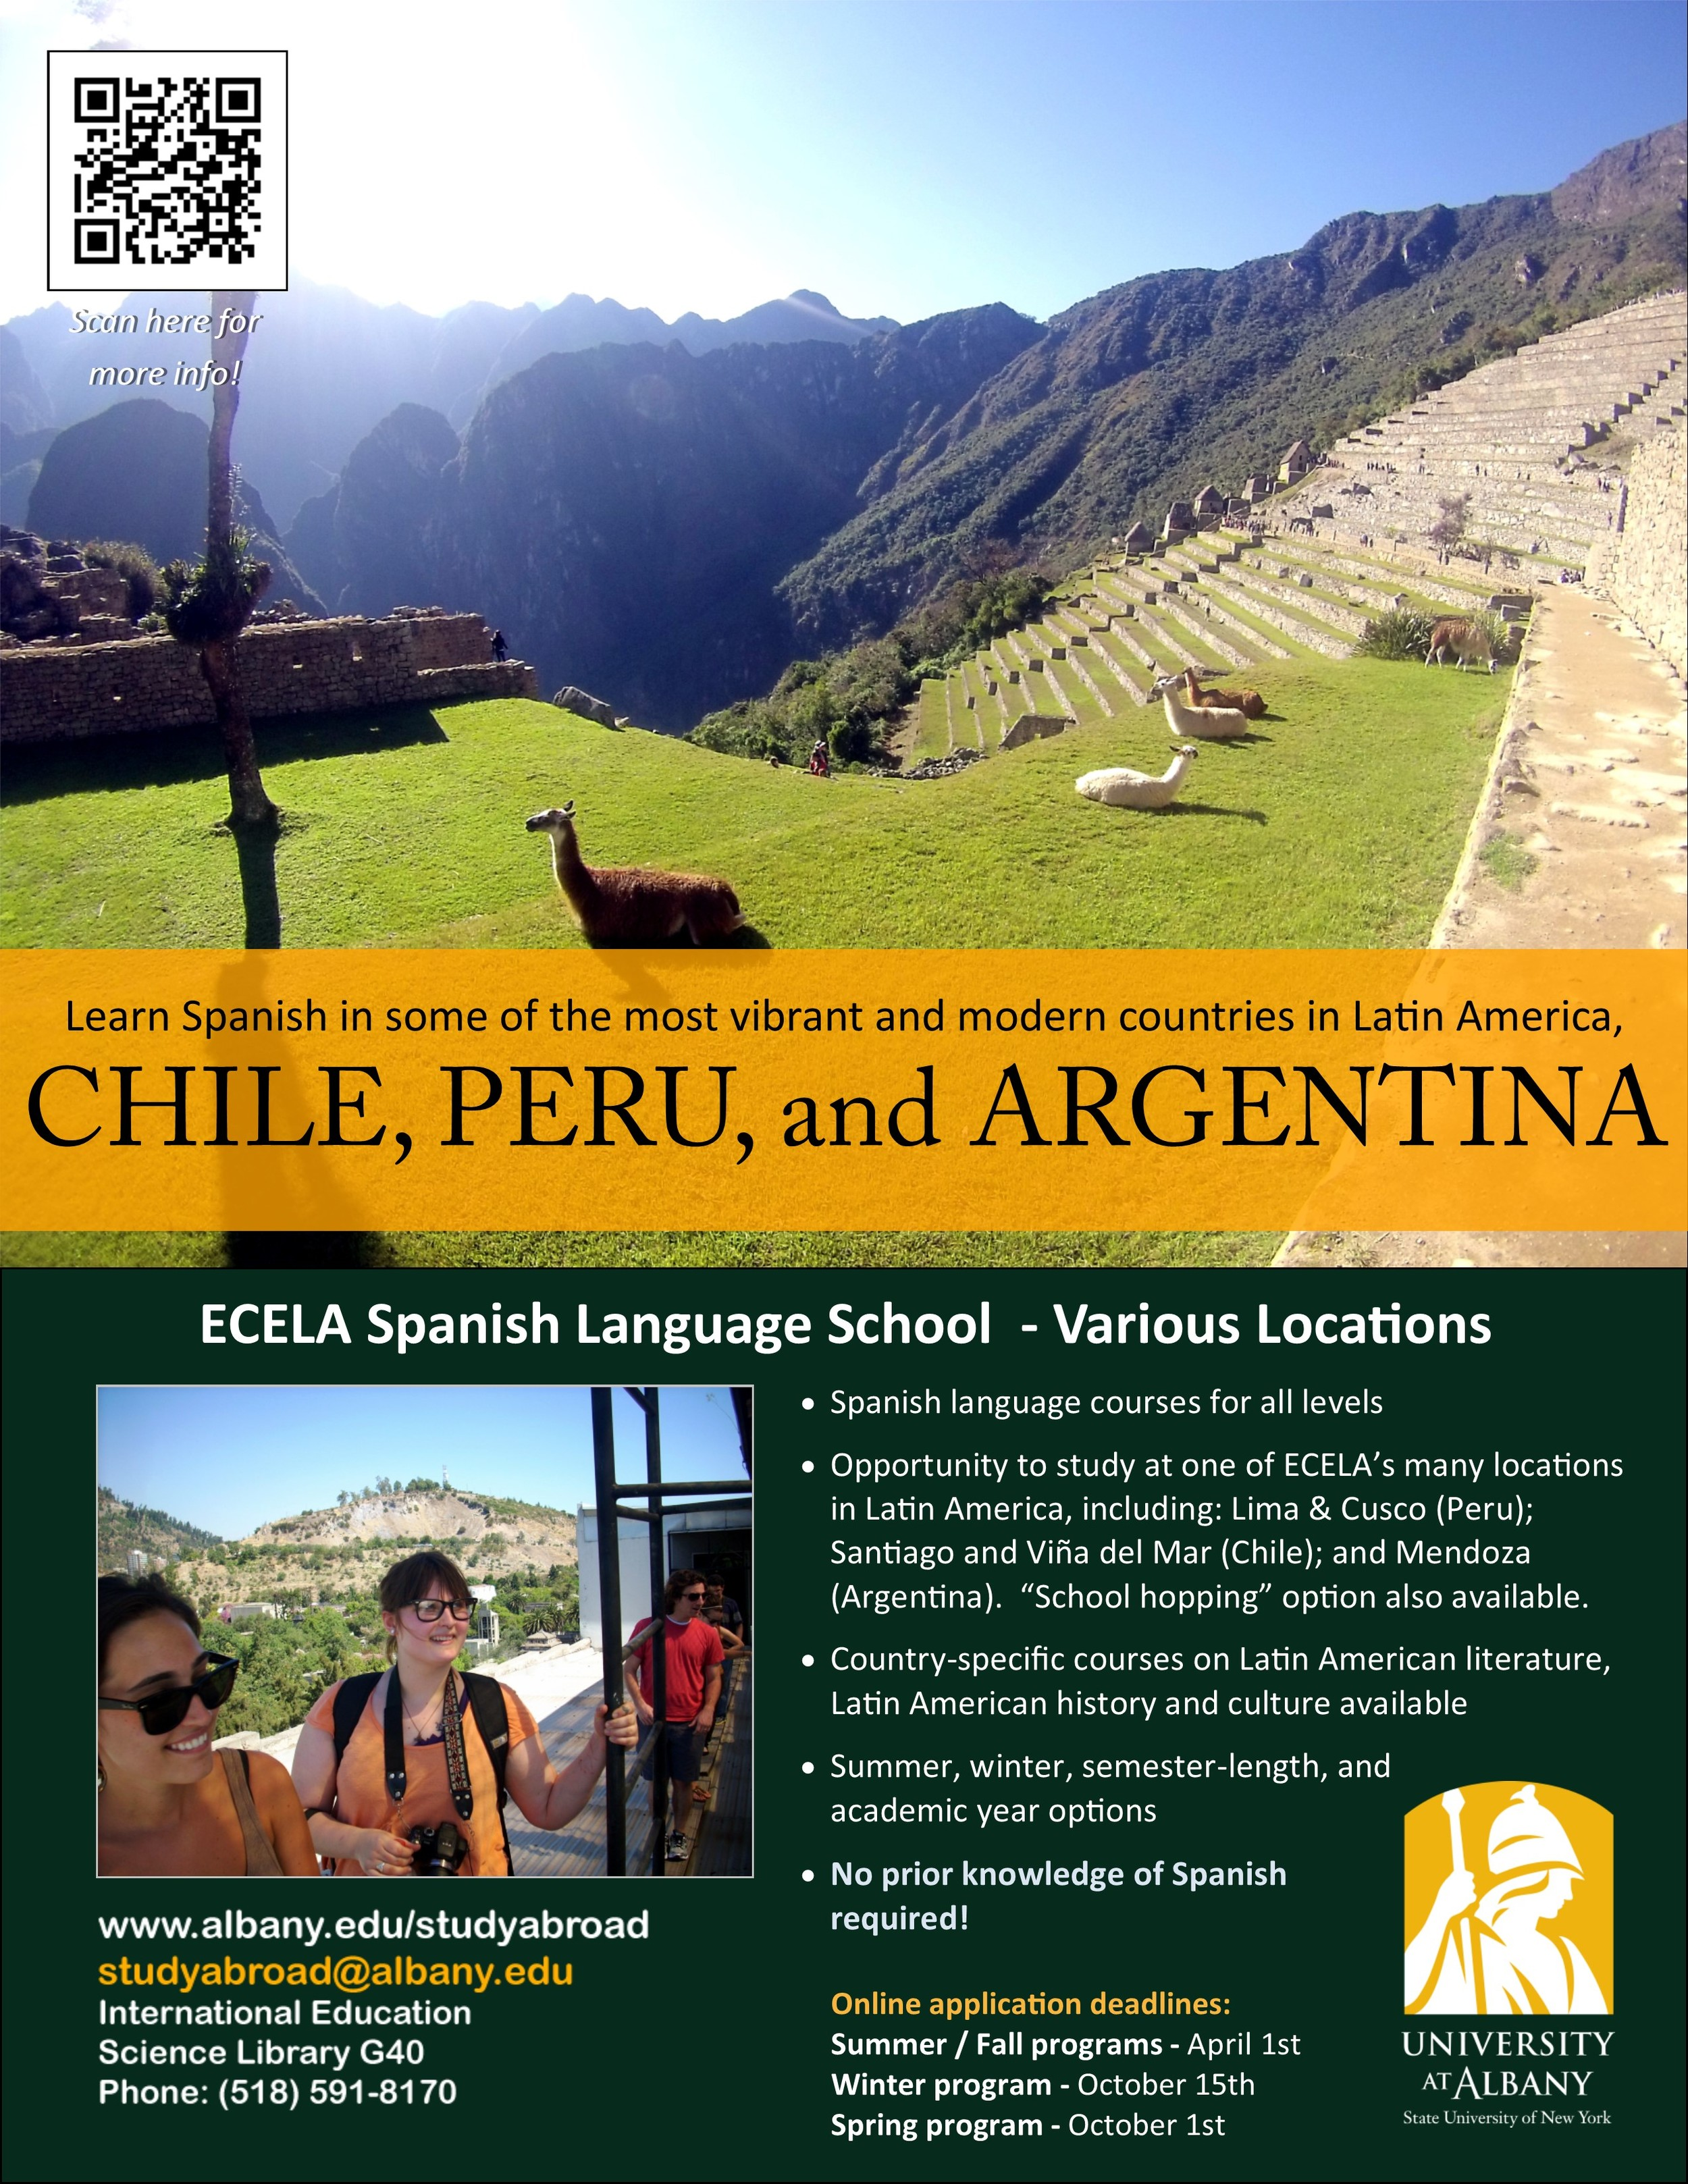 ECELA (Chile, Peru, and Argentina).jpg